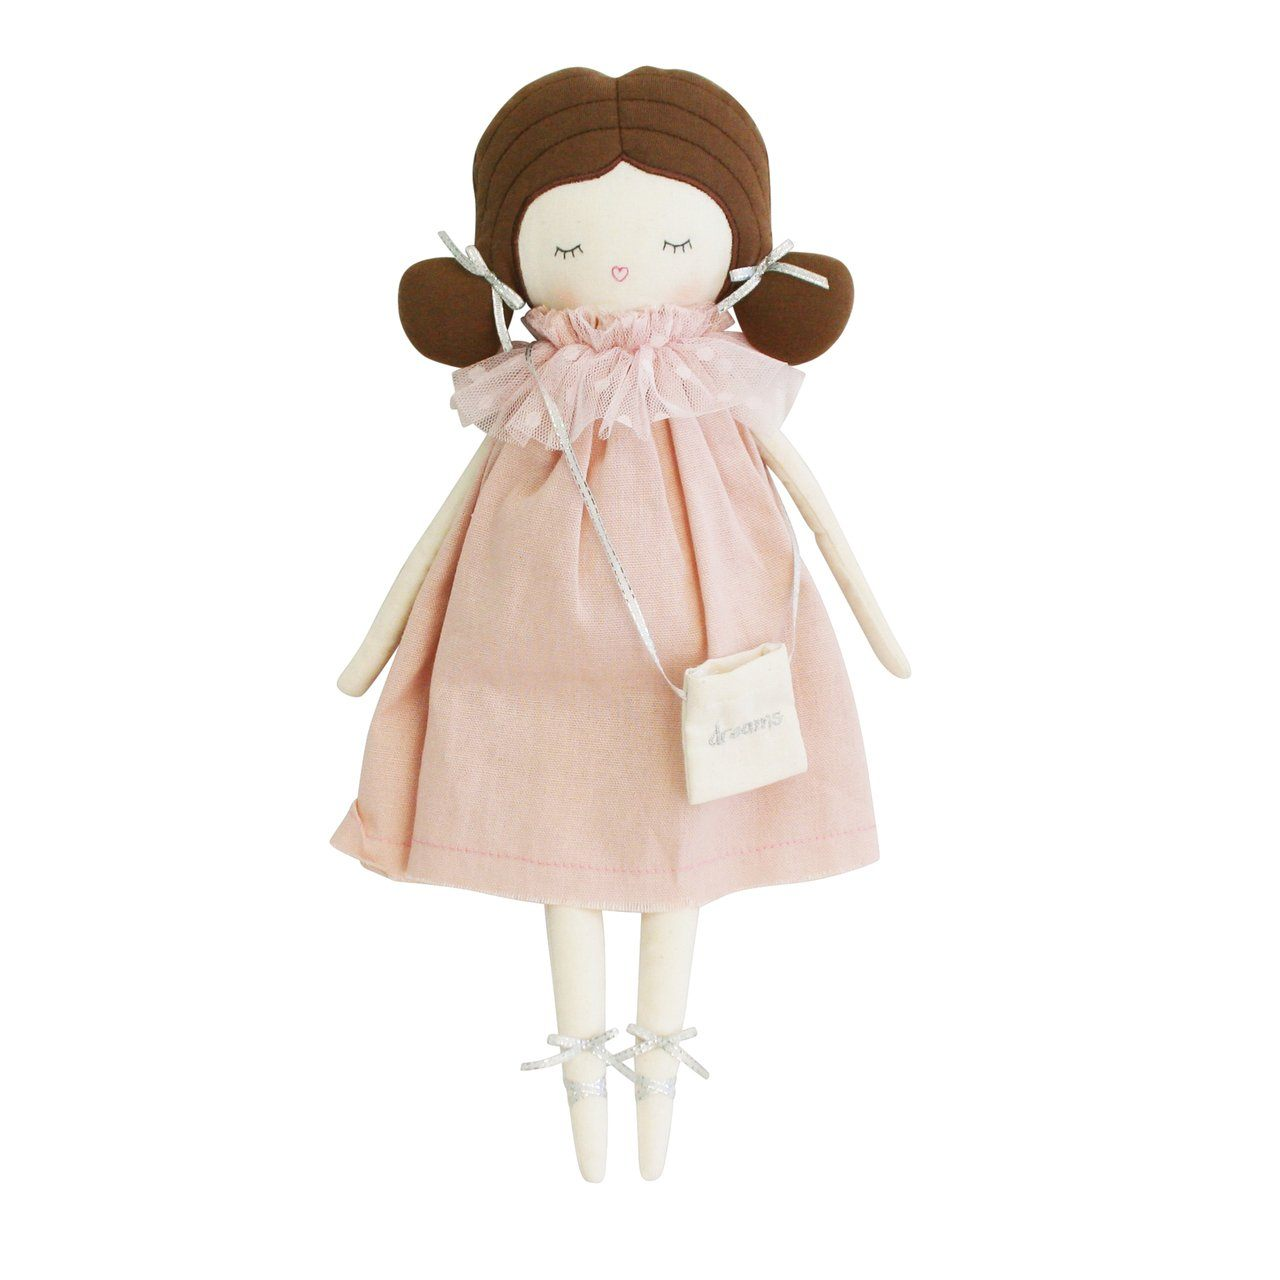 Emily Dreams Doll (Pink)